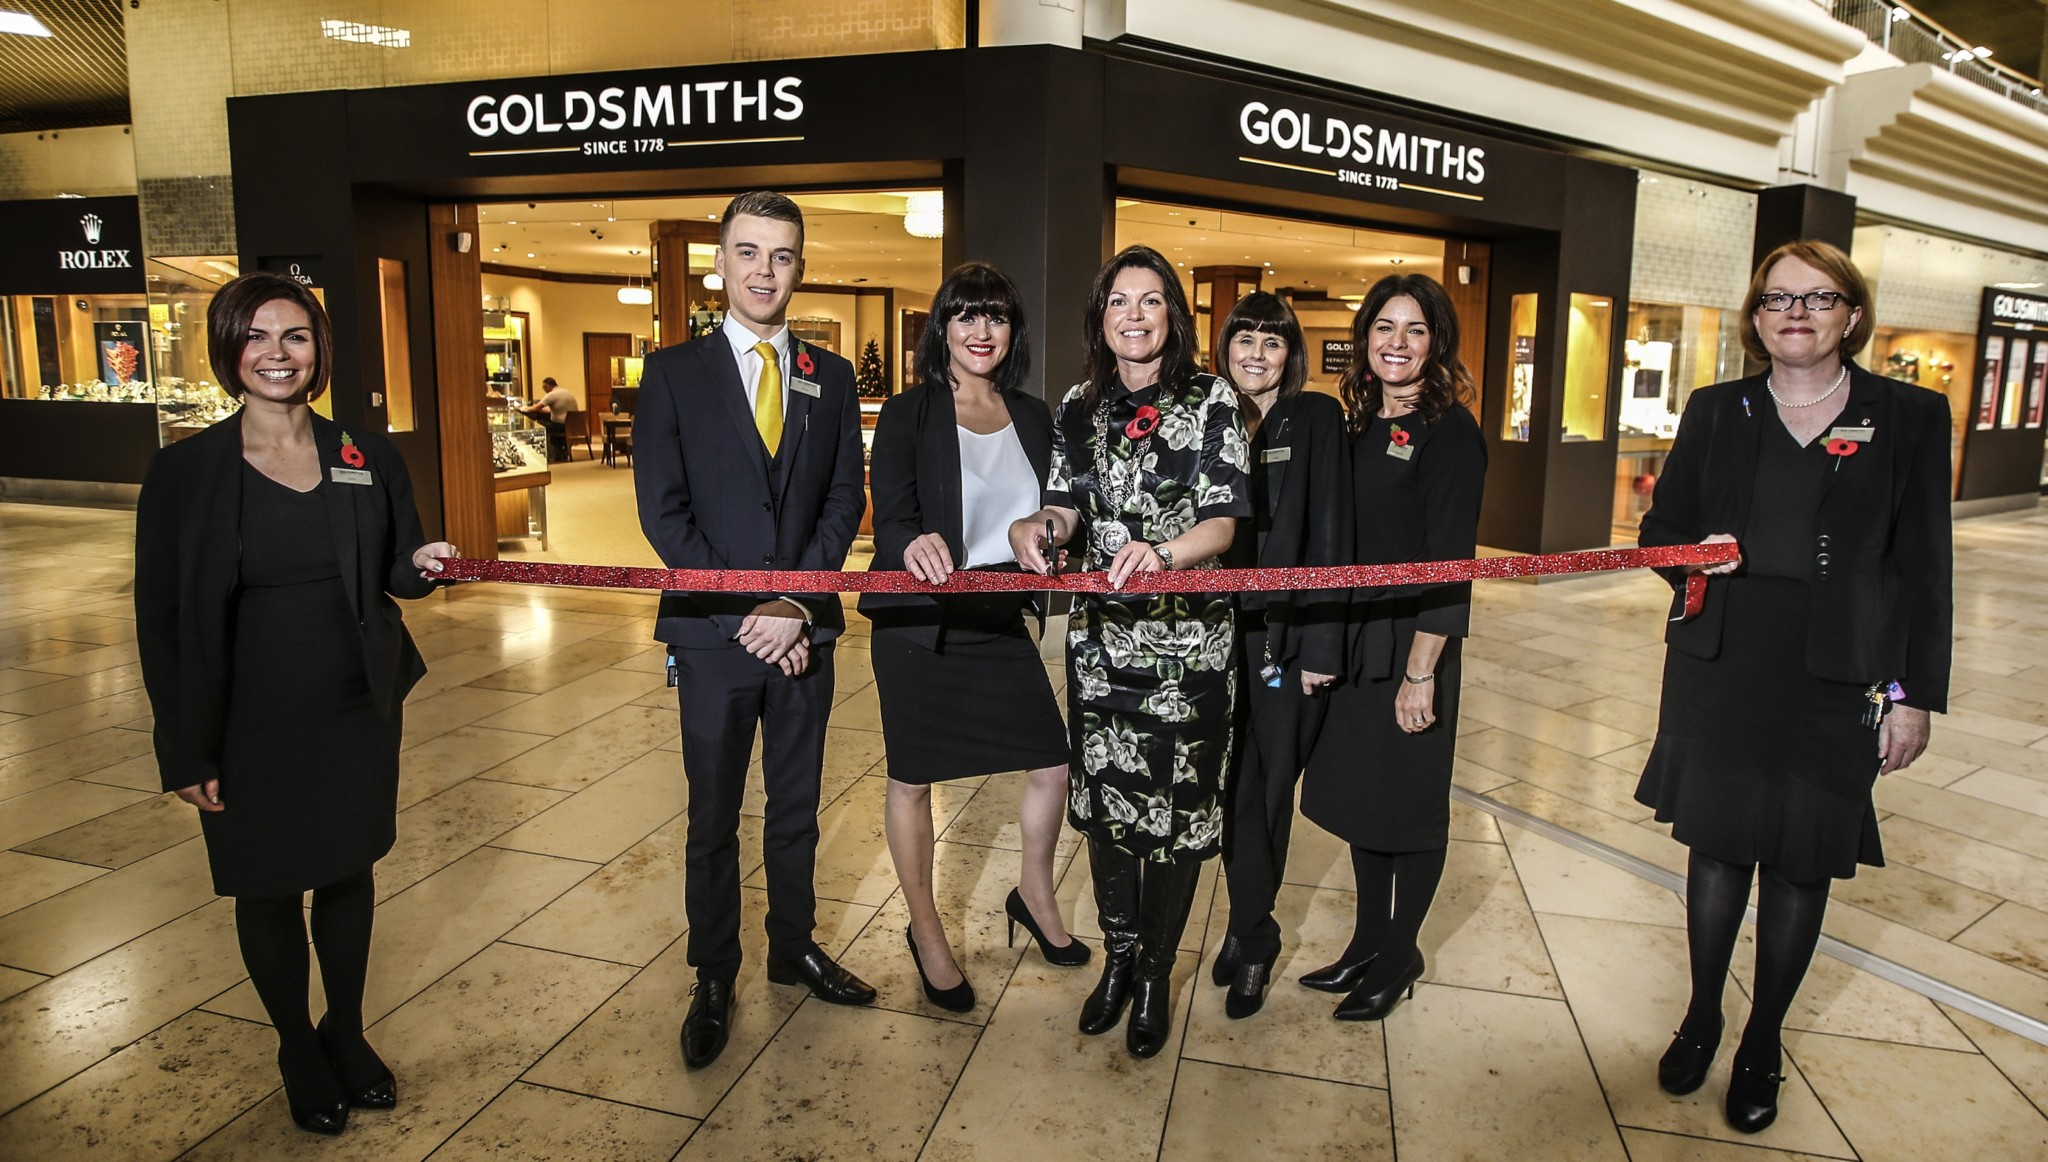 Goldsmiths intu Metrocentre unveils new showroom and brands